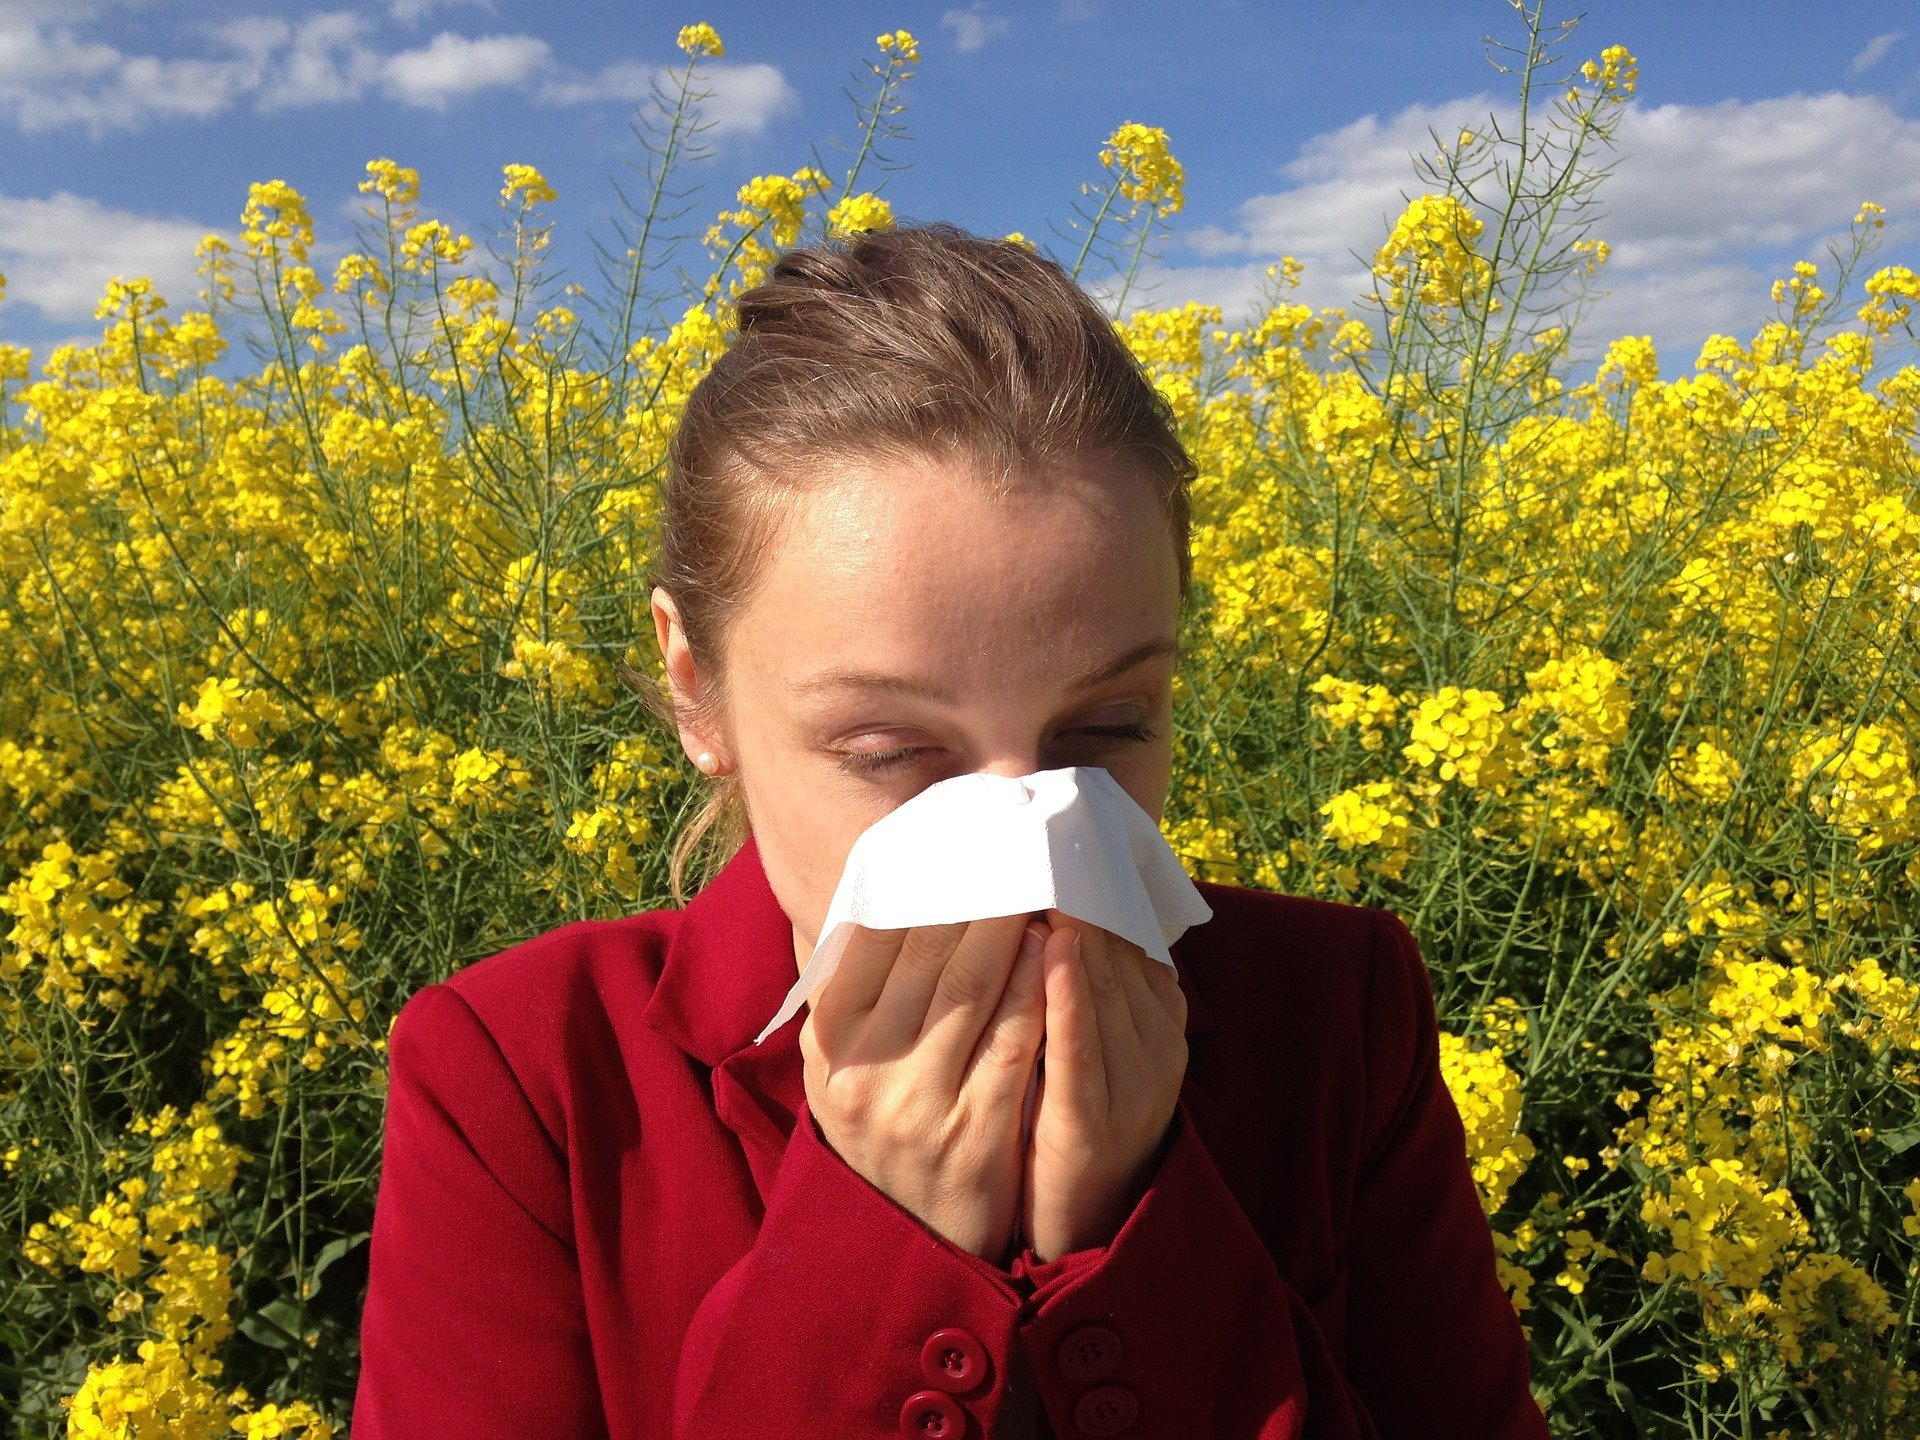 Treating Hay Fever with Traditional Acupuncture